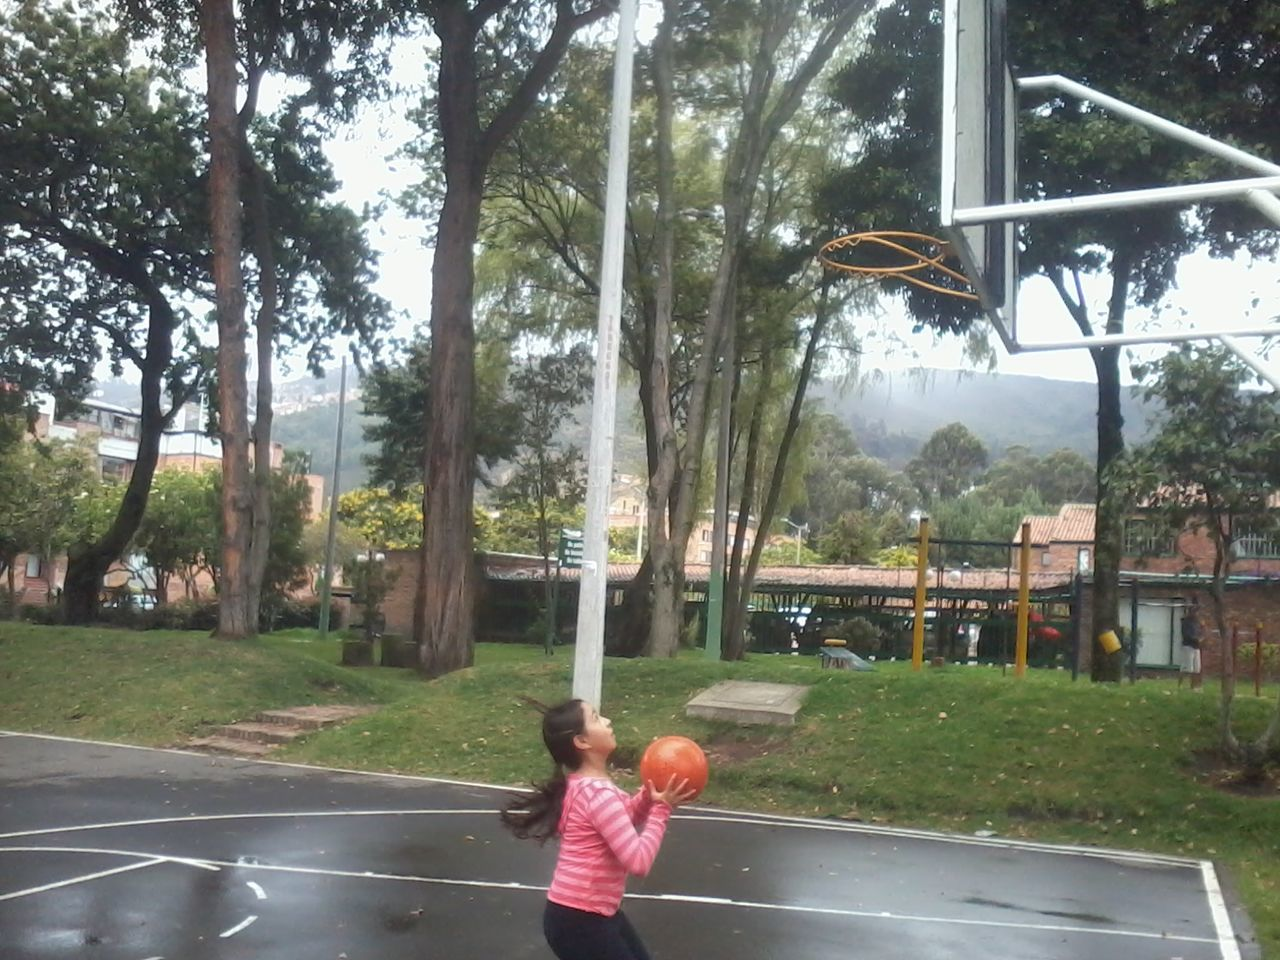 tree, real people, day, one person, childhood, casual clothing, boys, playing, growth, lifestyles, basketball hoop, outdoors, basketball - sport, nature, court, sky, people